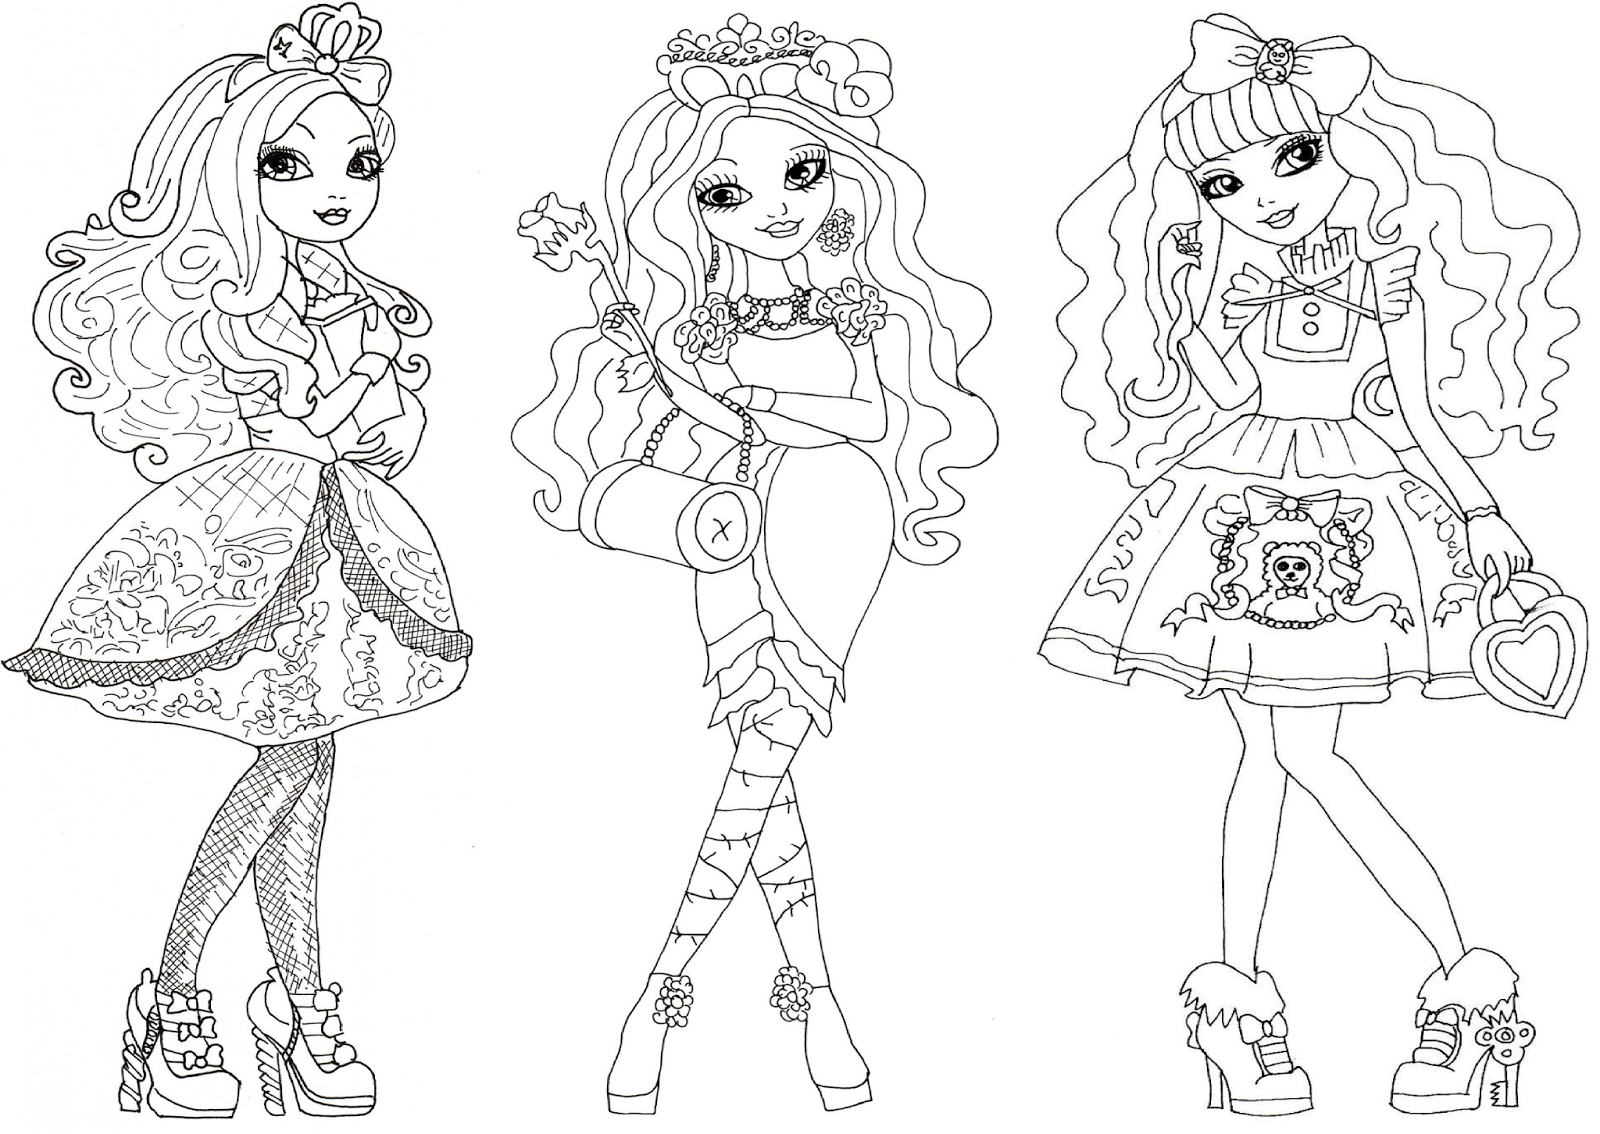 Coloring Pages Ever After High : Free printable ever after high coloring pages october